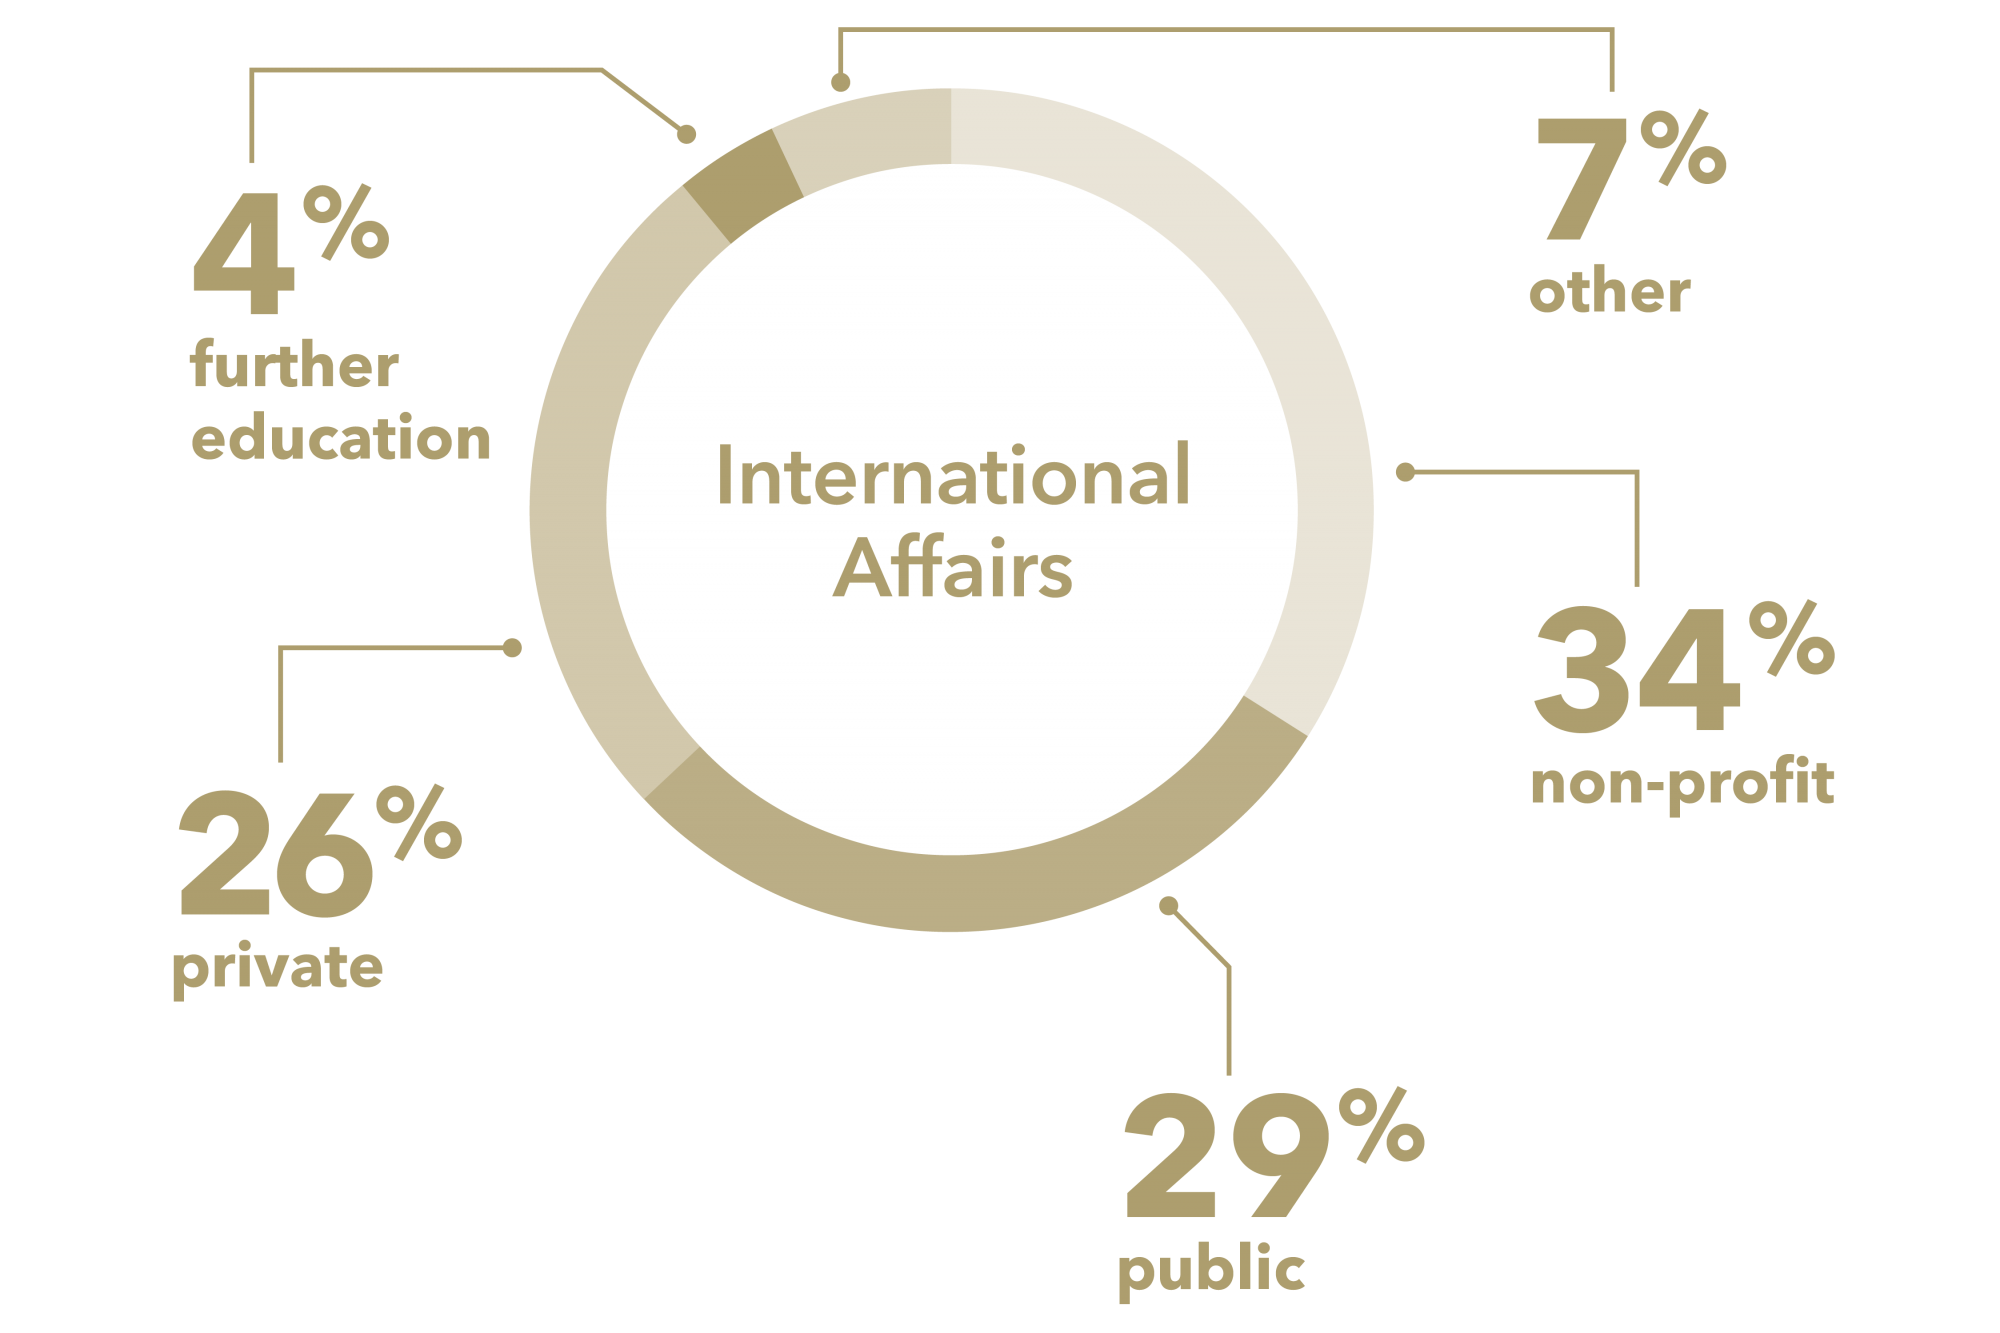 graphic: pie chart, 4% further education, 26% private, 29% public, 34% non-profit, 7% other, International Affairs